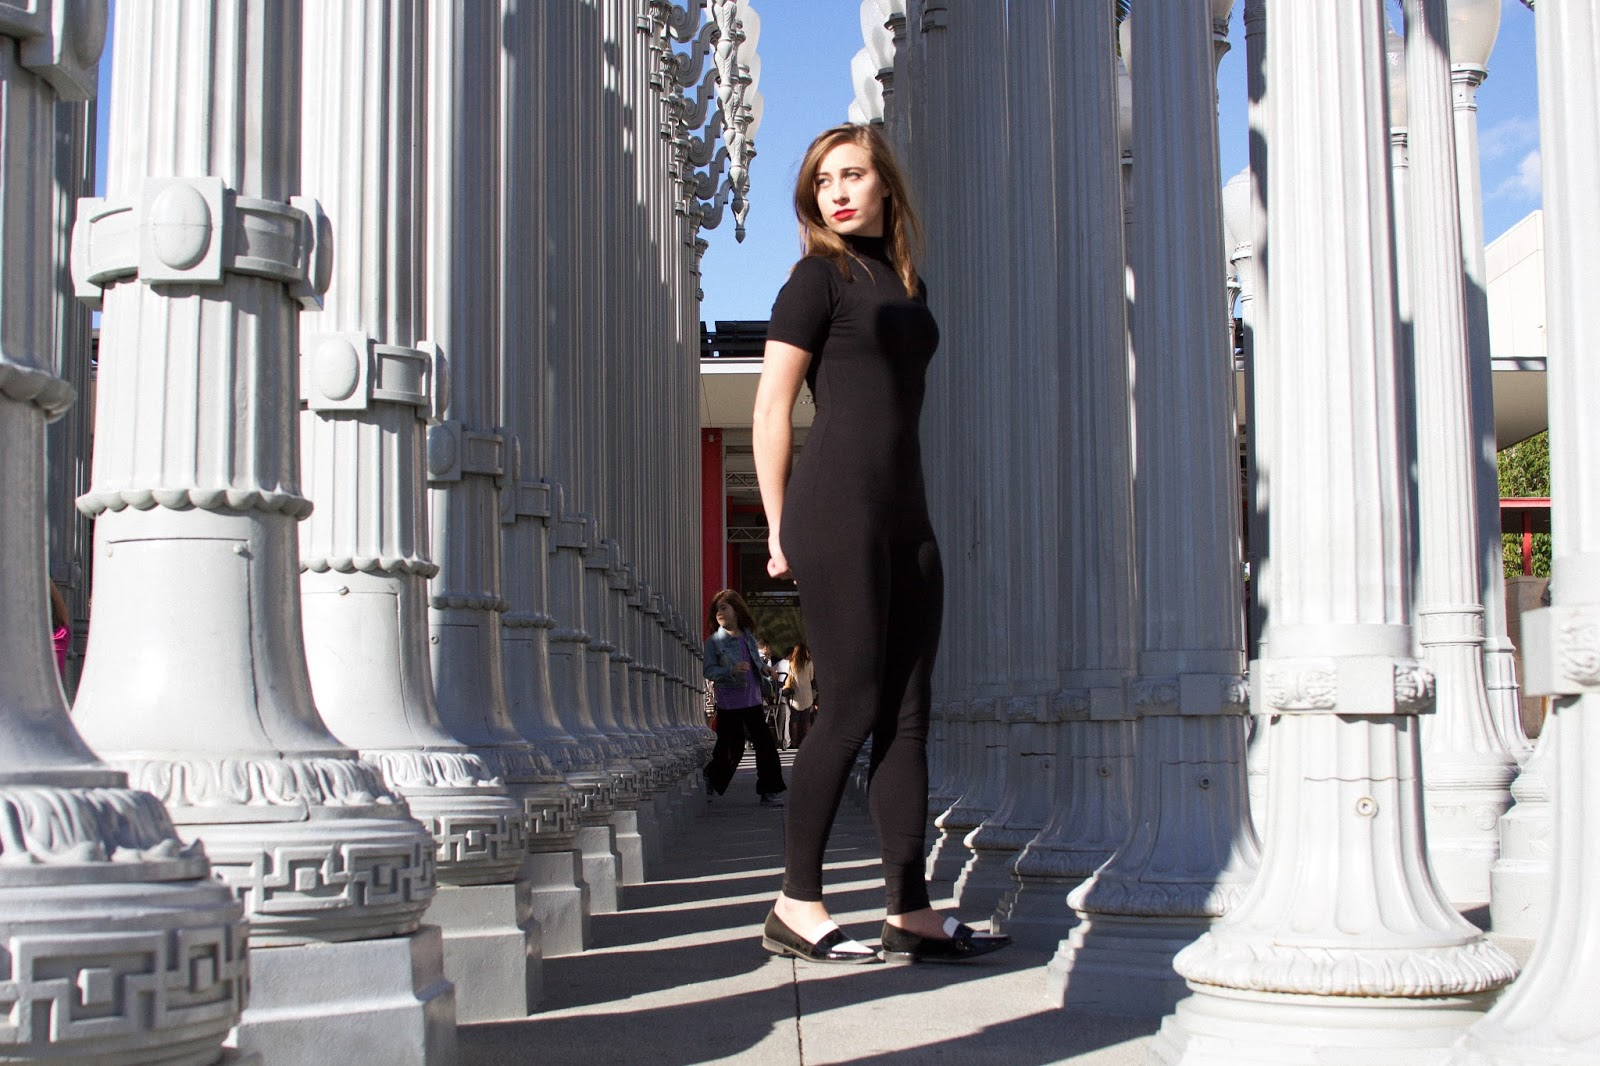 ASOS, unitard, boohoo shoes, black and white loafers, taylor swift style, classic style, surrey hepburn style, lama, los angeles vacation, vintage style, retro style, screenwriting, style blogger, film blogger, movie inspired looks,